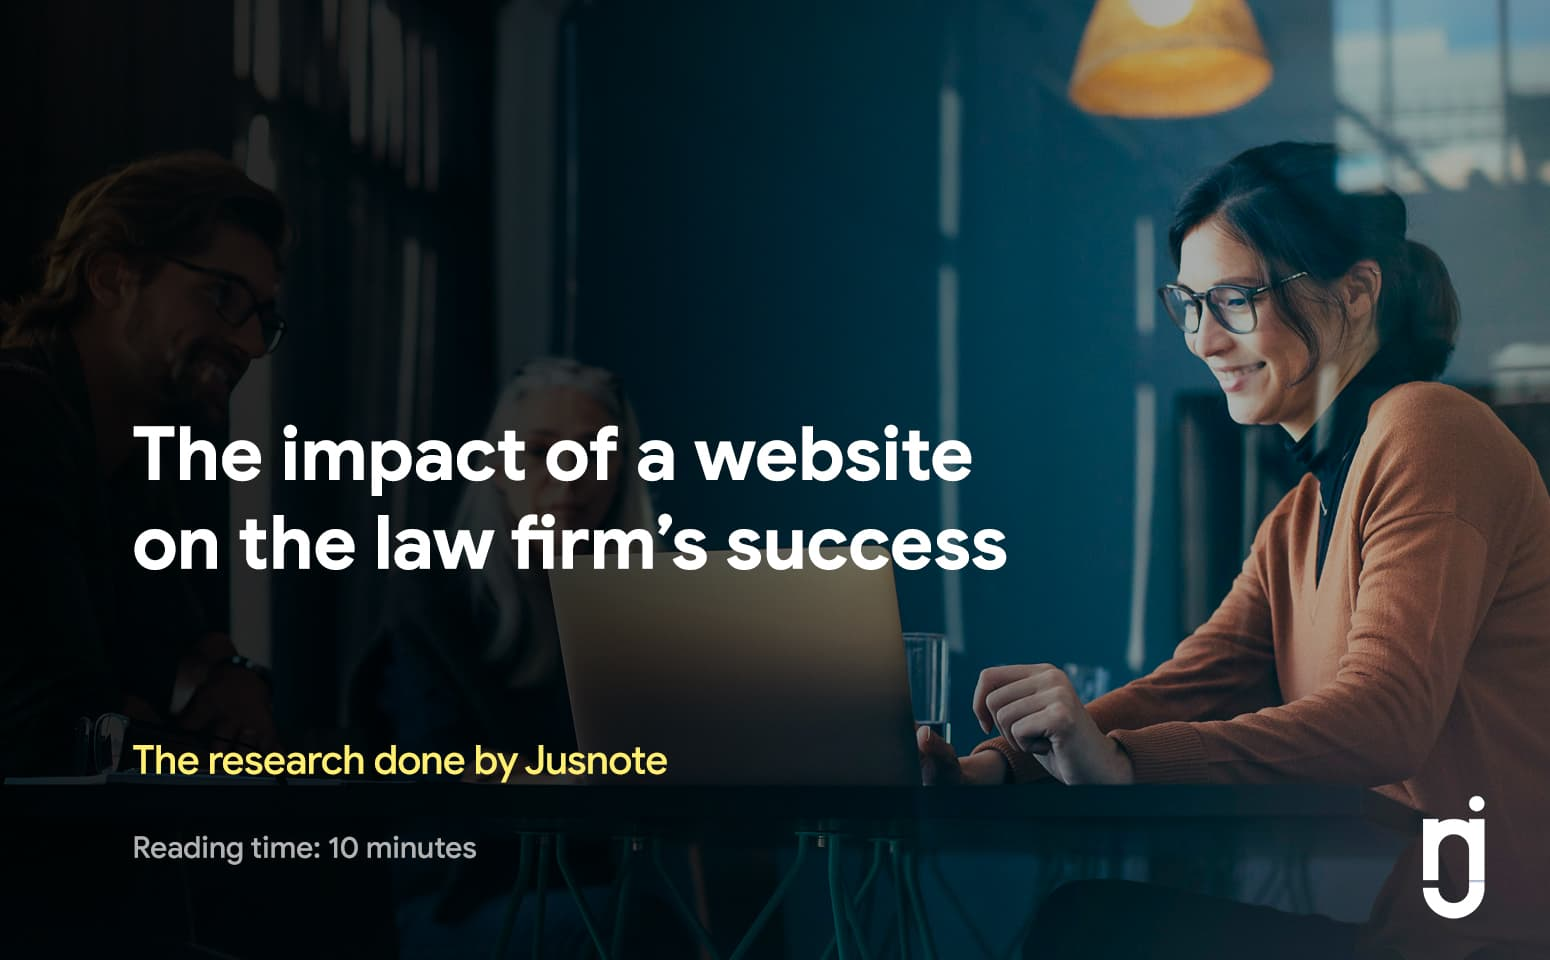 Jusnote websites research